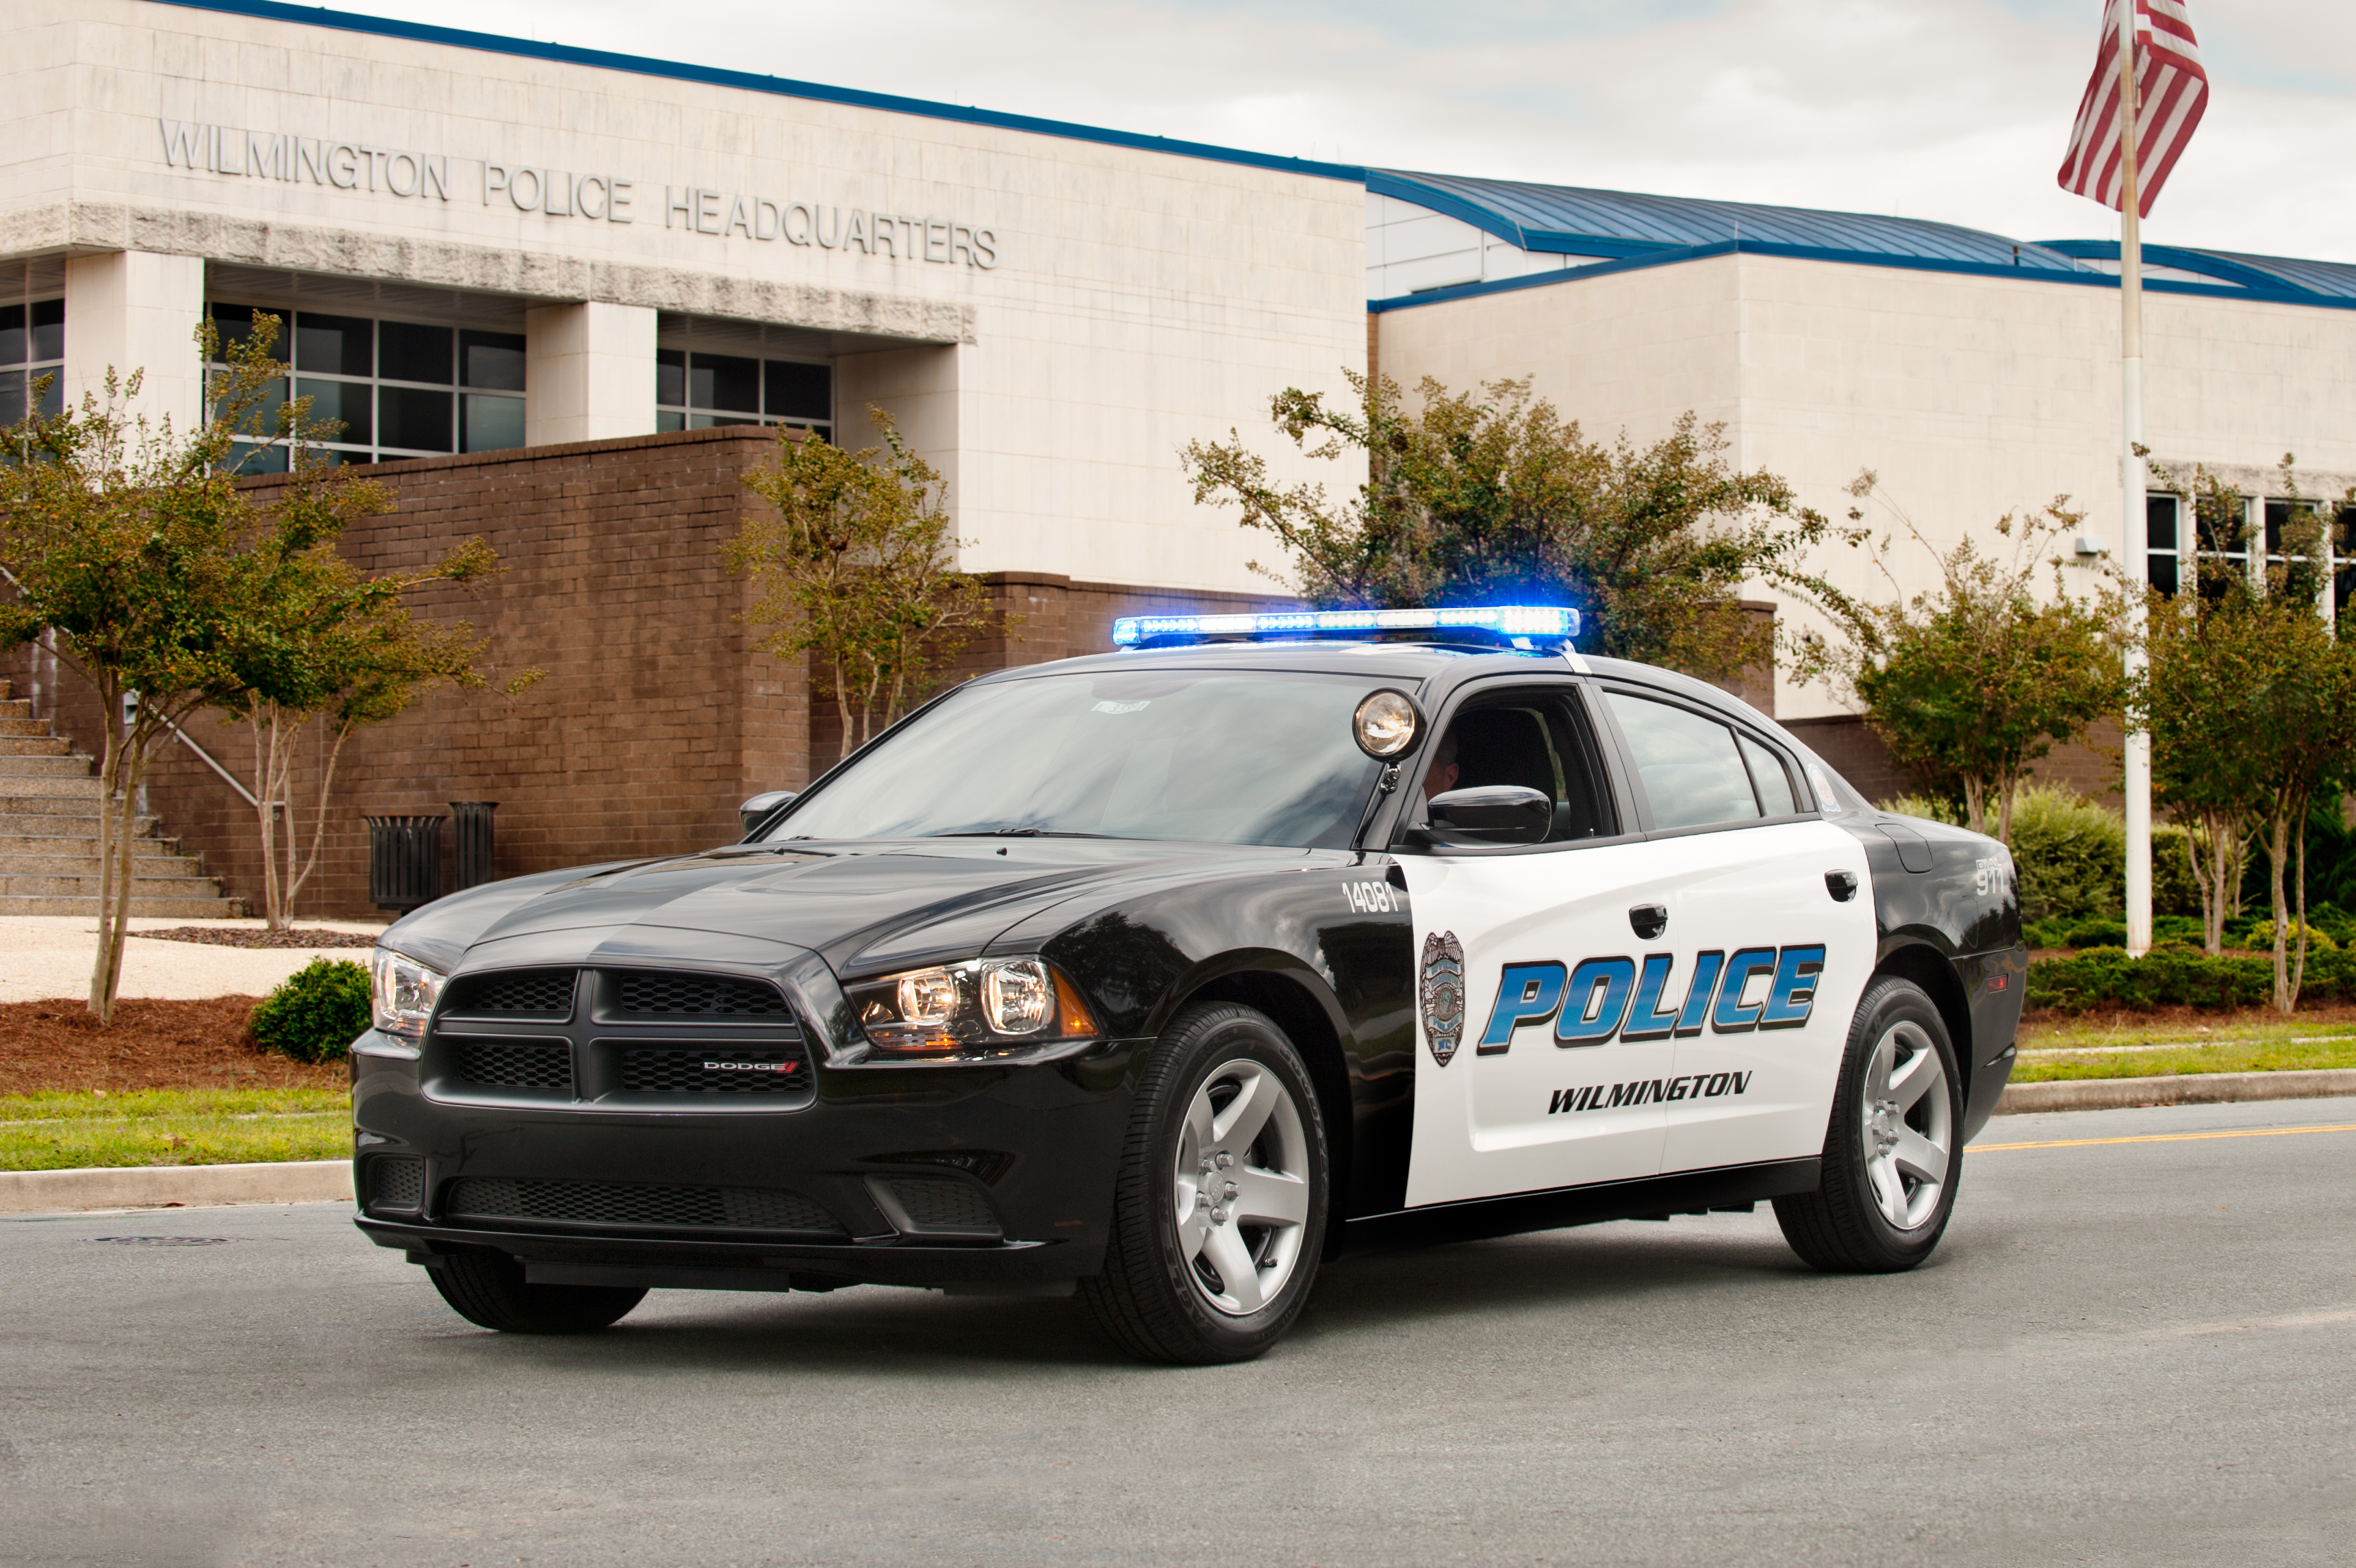 N.C. Police Department Gets a Boost with Take-Home Vehicles